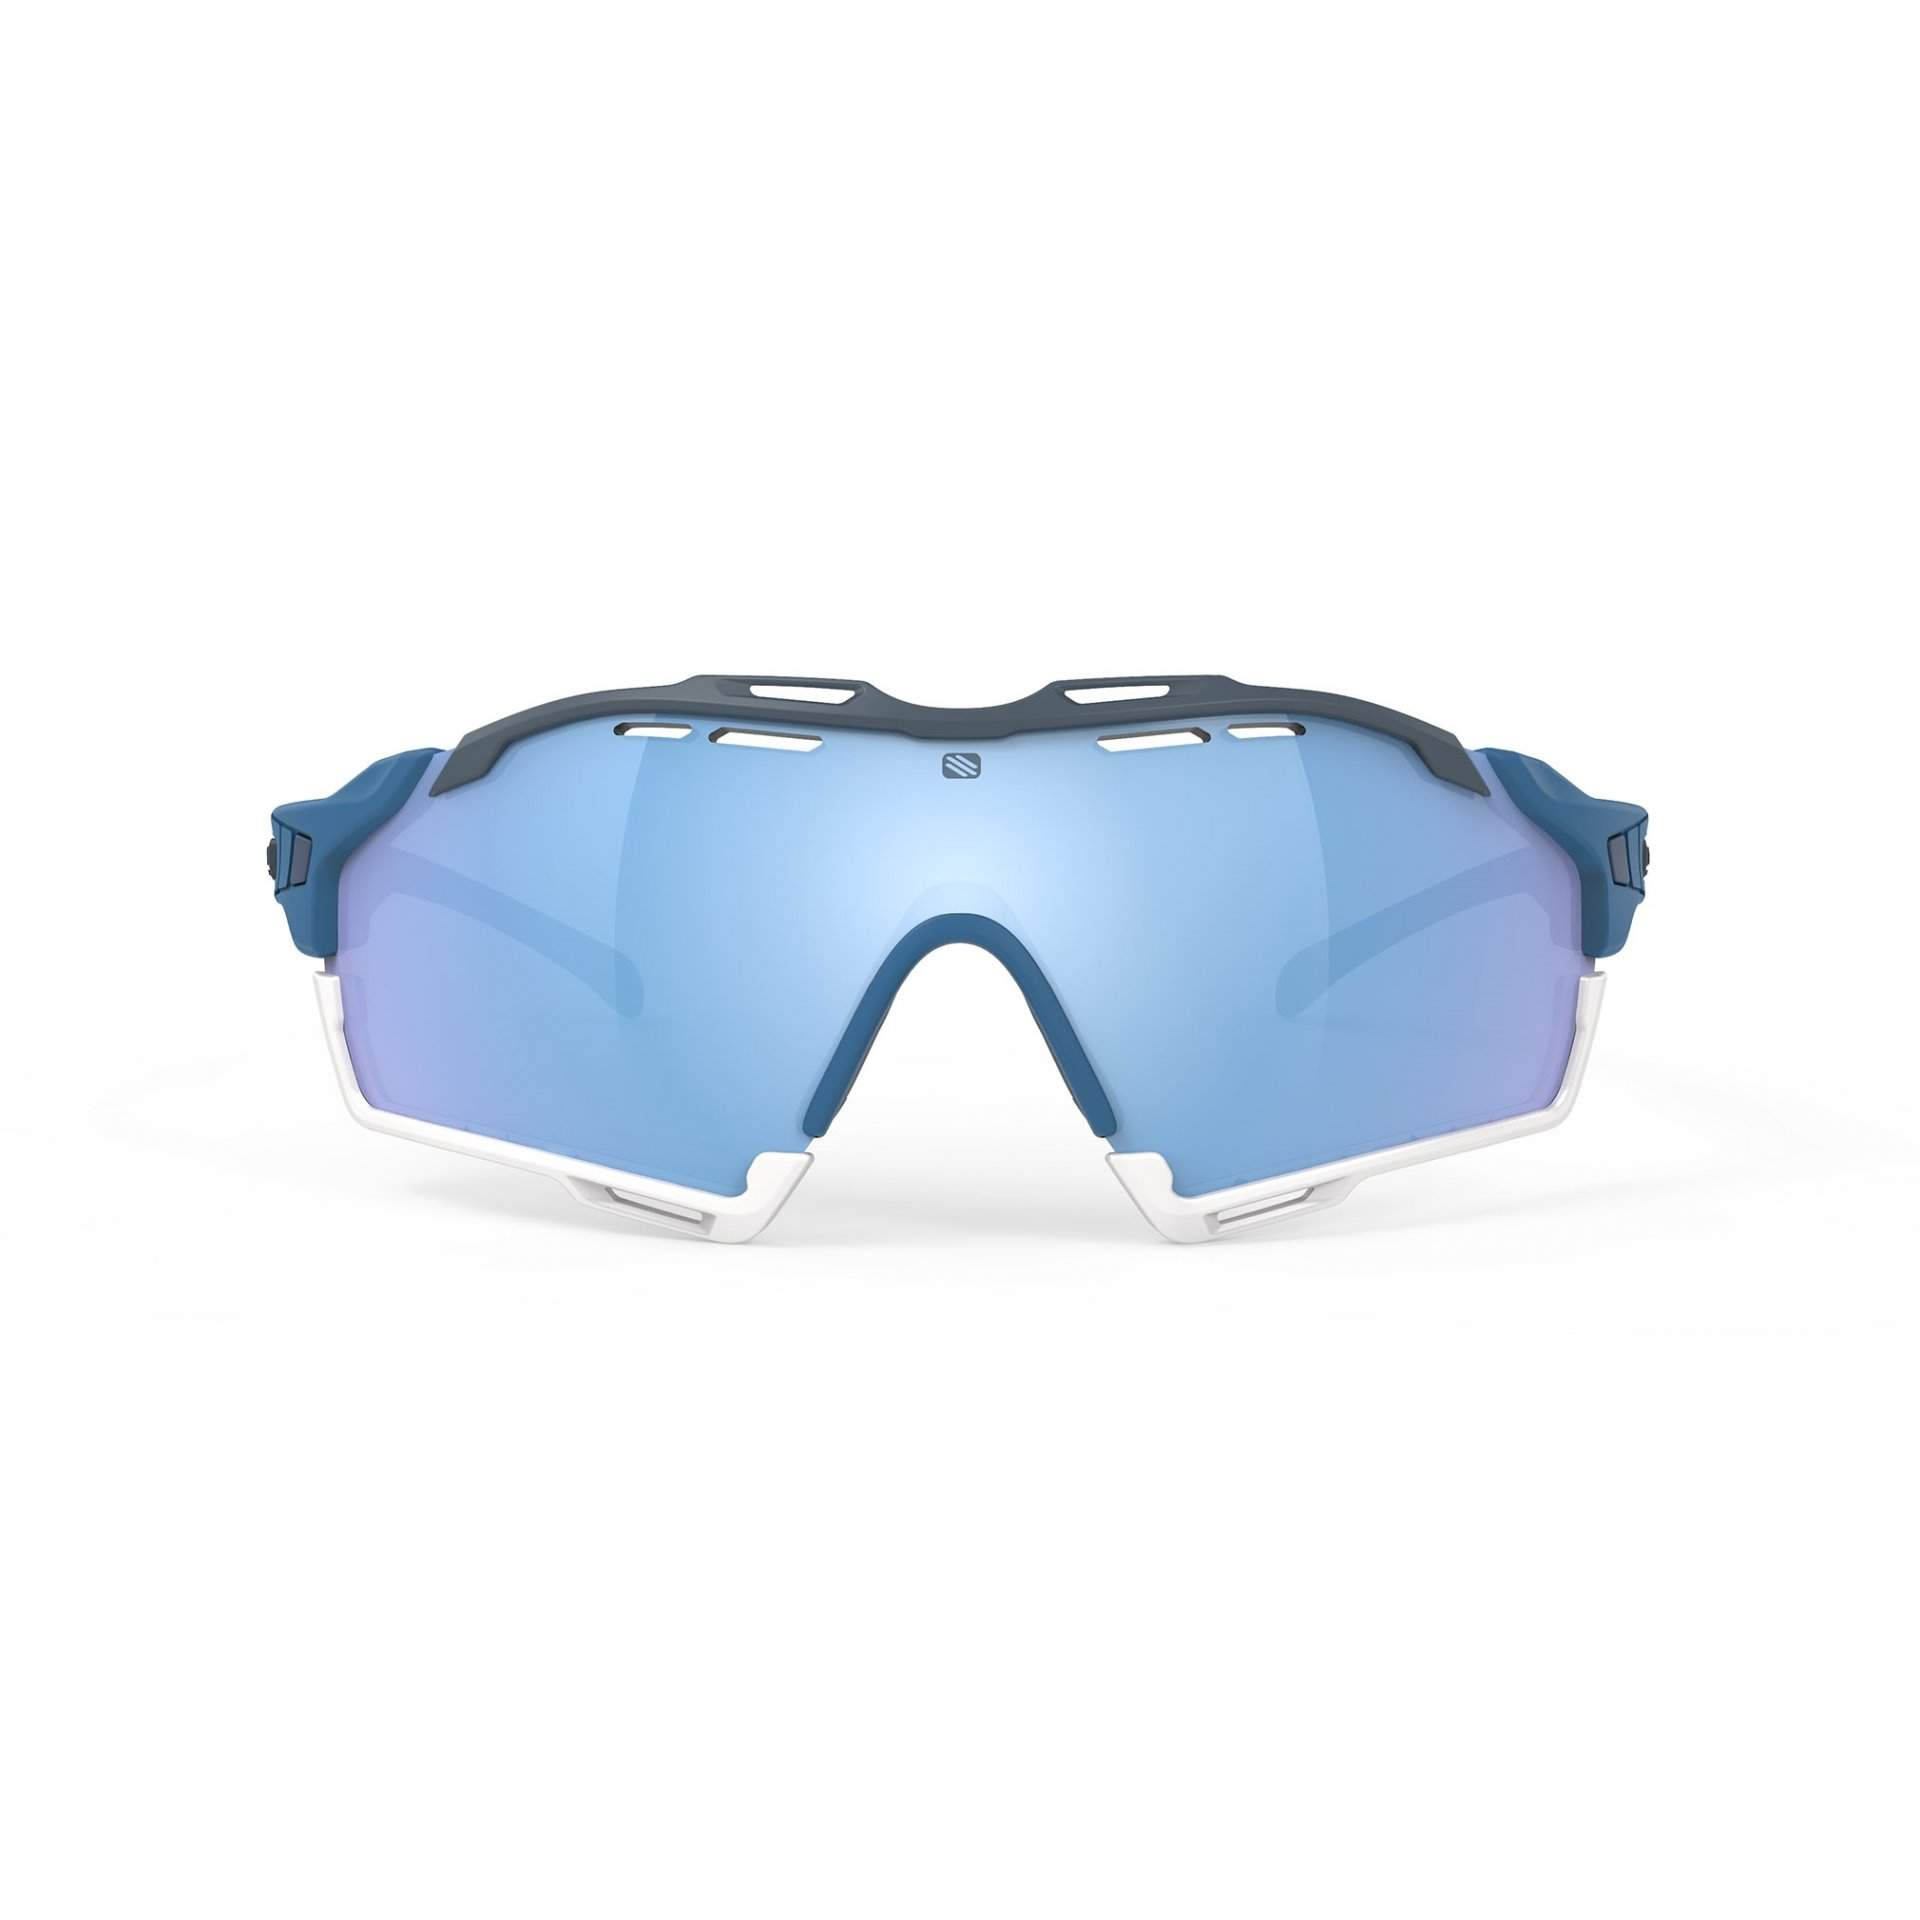 OKULARY RUDY PROJECT CUTLINE MULTILASER ICE + PACIFIC BLUE MATTE SP6368490000 Z PRZODU